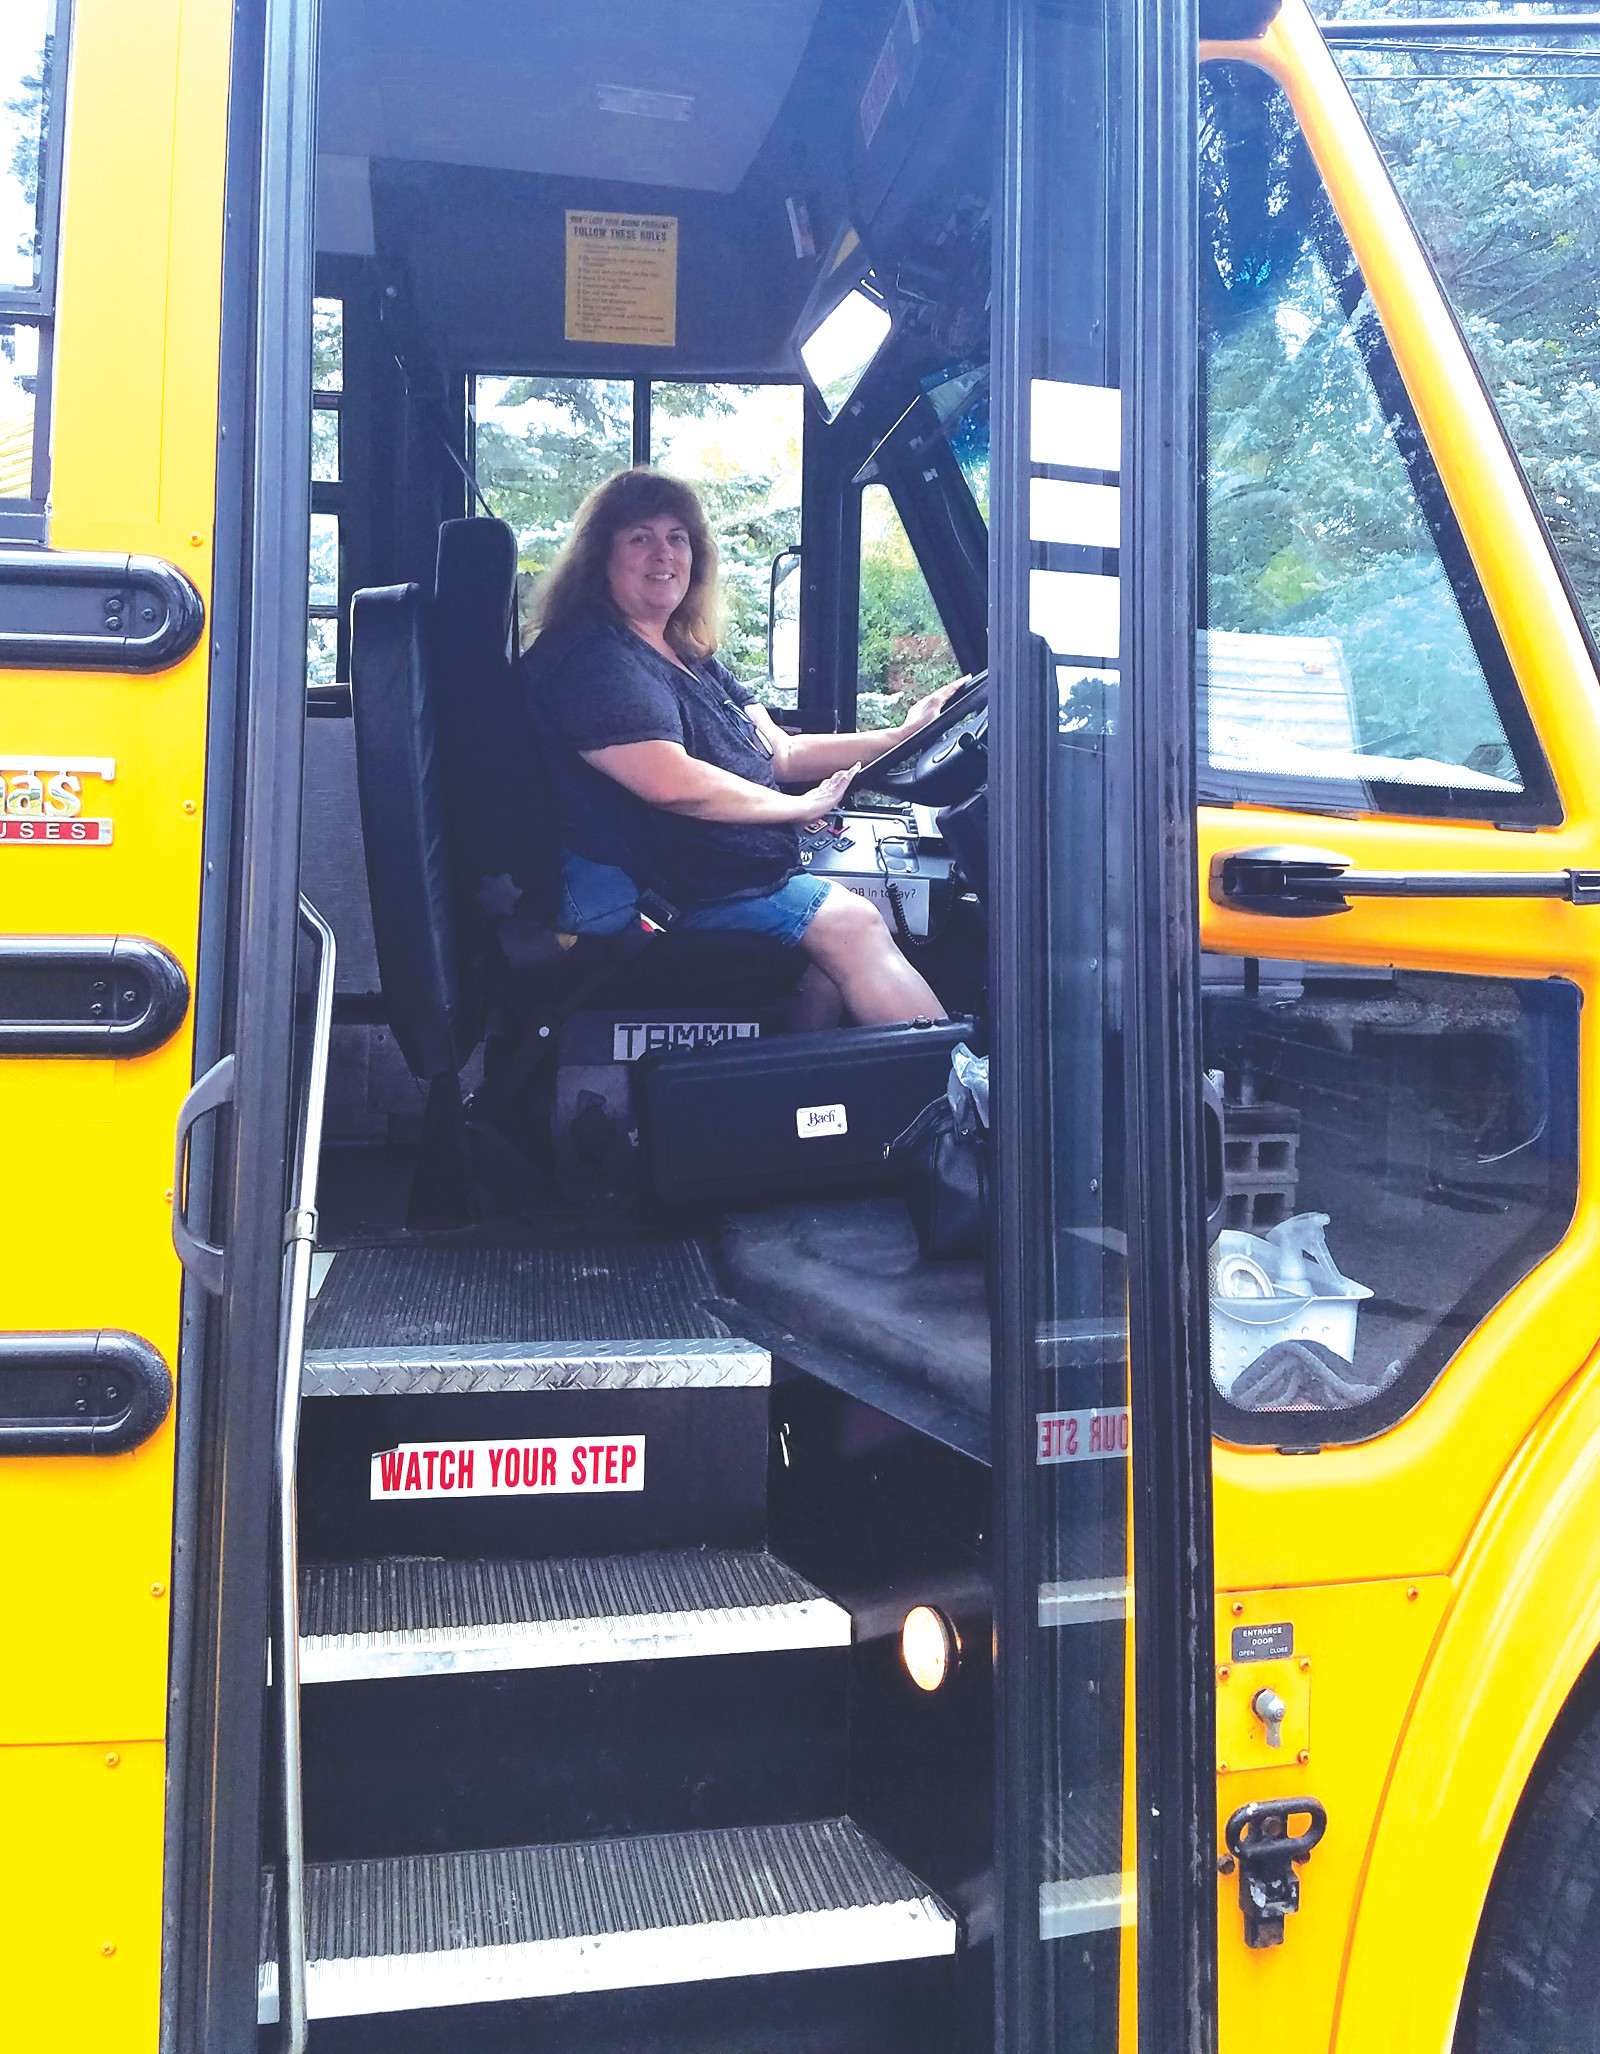 SAME ROUTE: Bus driver Tammy Pelland has been driving the same bus route for 31 years in Cranston, bringing elementary, middle and high school students to school and back again, safe and sound for more than three decades.